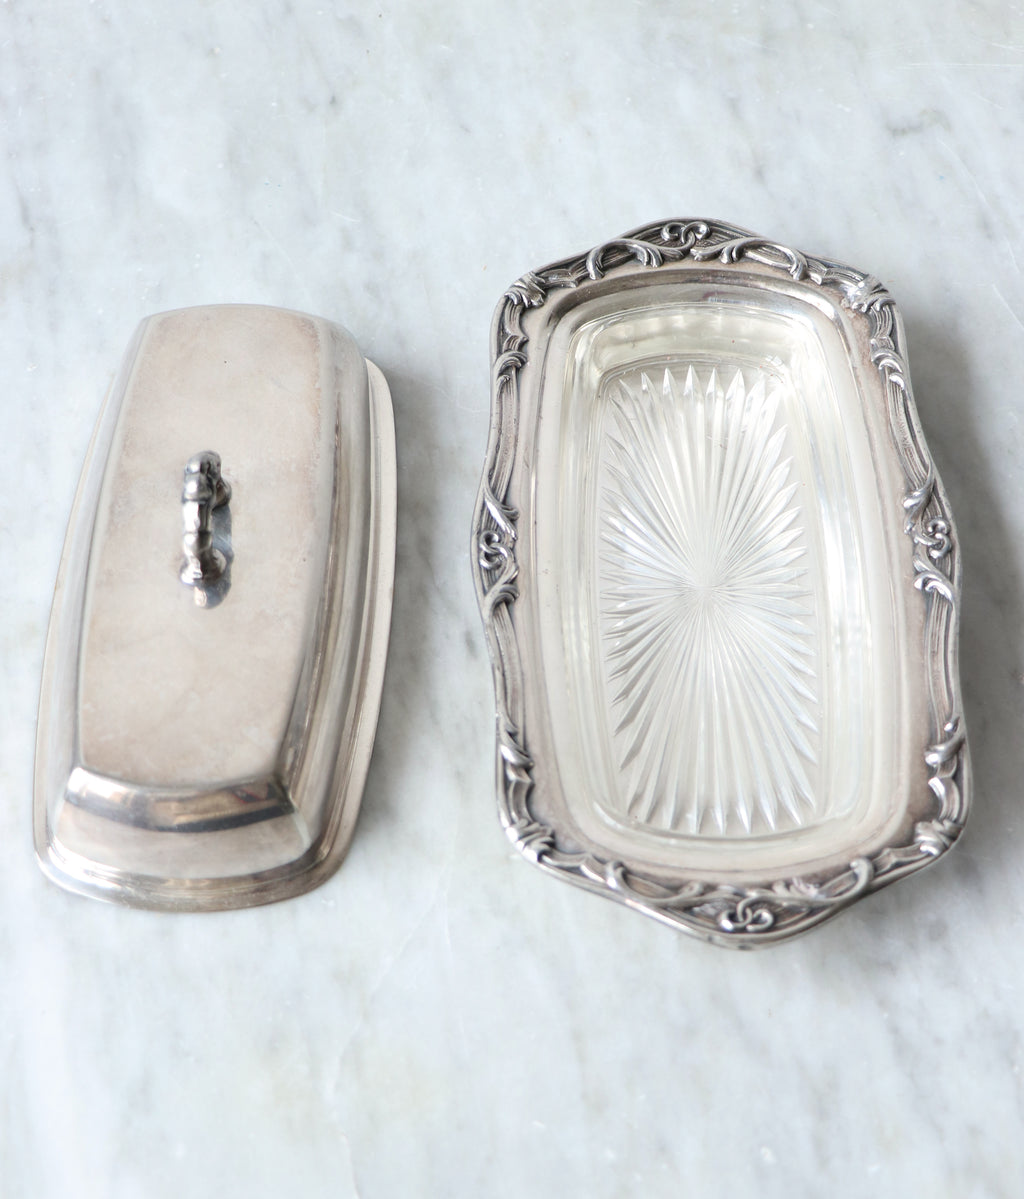 Vintage Silverplated Butter Dish